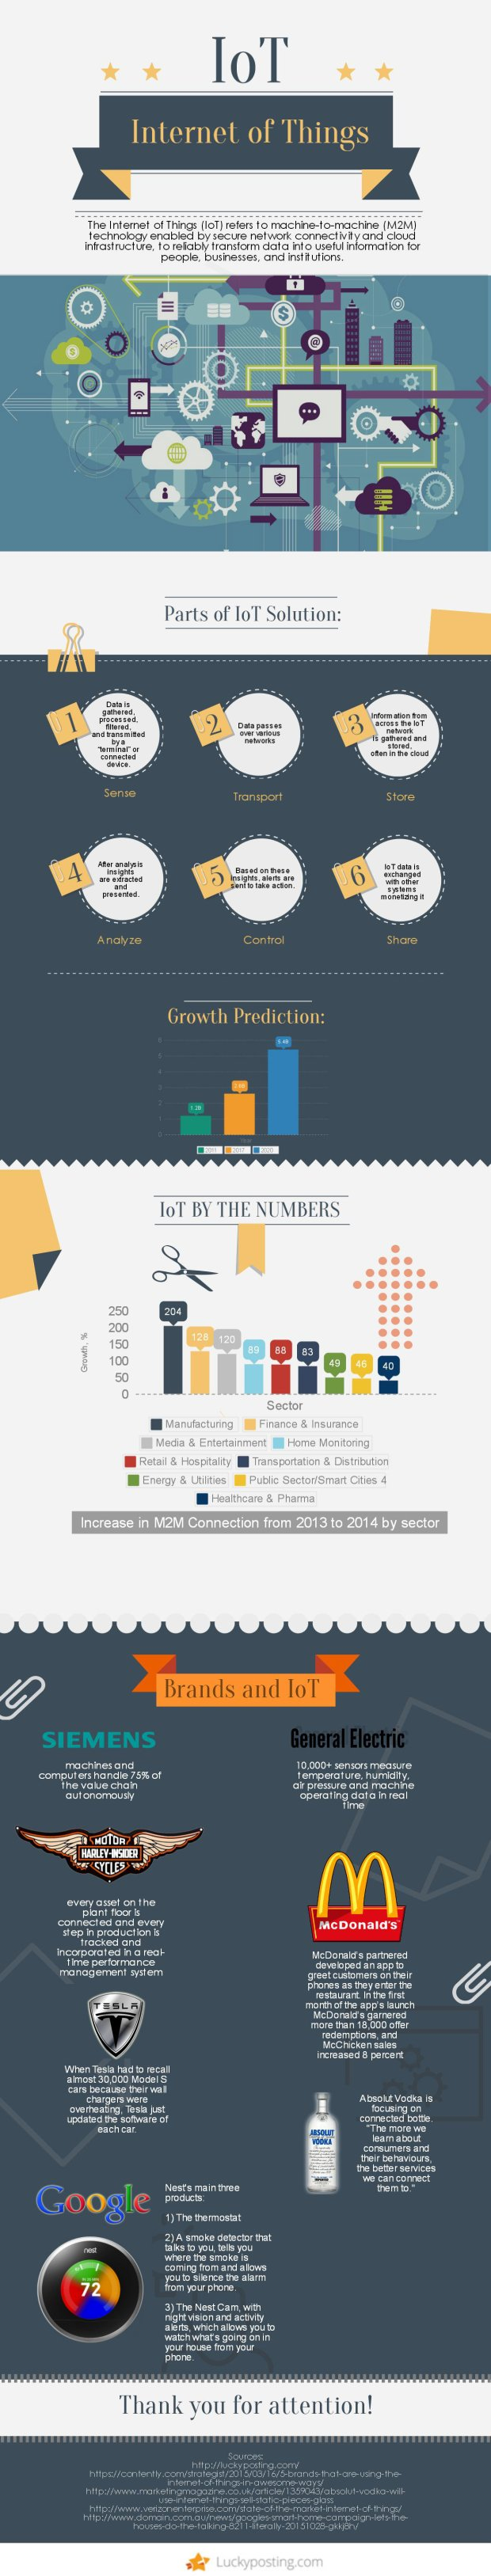 Internet of Things (IoT) infographic by LuckyPosting.com